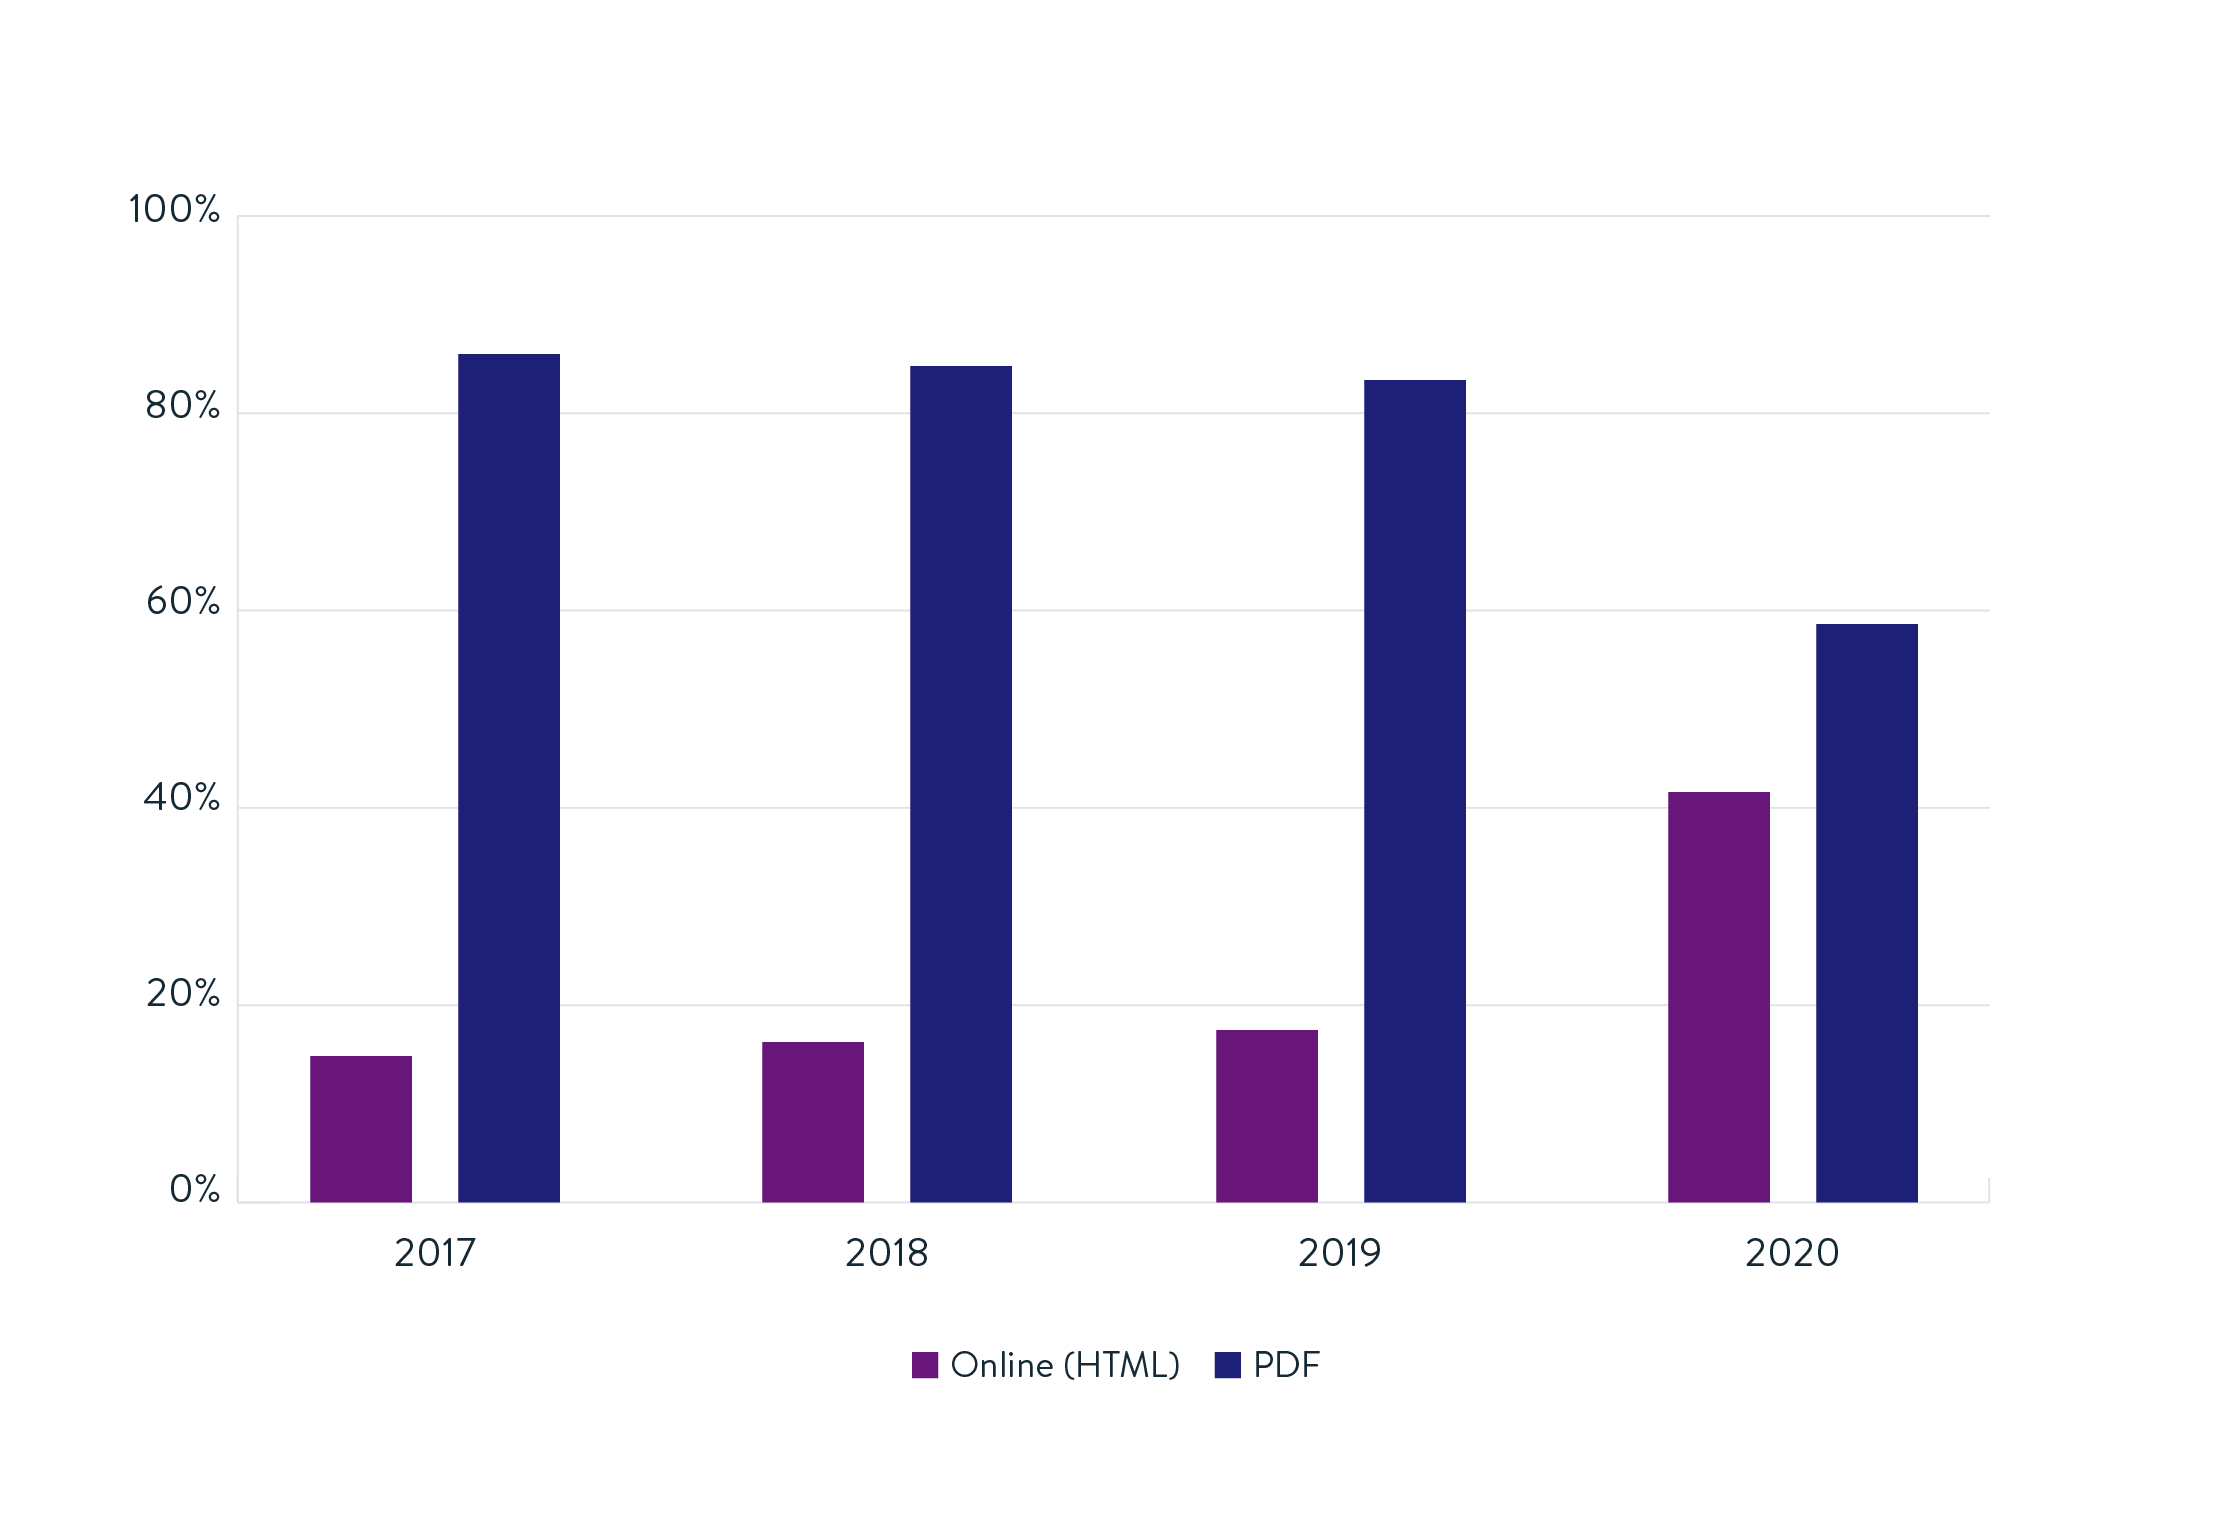 Column chart showing the preferred methods to read reports since 2017. The X axis goes from 0% to 100%. The Y axis goes from 2017 to 2020. For each year there are two columns. Purple = Online (HTML) reports, Blue = PDF reports. In 2017 and 2018 PDF reports were above 80% and Online reports under 20%. By 2019 Online reports were nearly at 20%, but PDF reports were still preferred by upwards of 80% of the capital market professionals surveyed. However in 2020 Online reports have seen a great increase to 42% - more than doubling in preference - with PDF reports shrinking back to 58% as a result, still preferred but far from as emphatically as was the case in previous years.